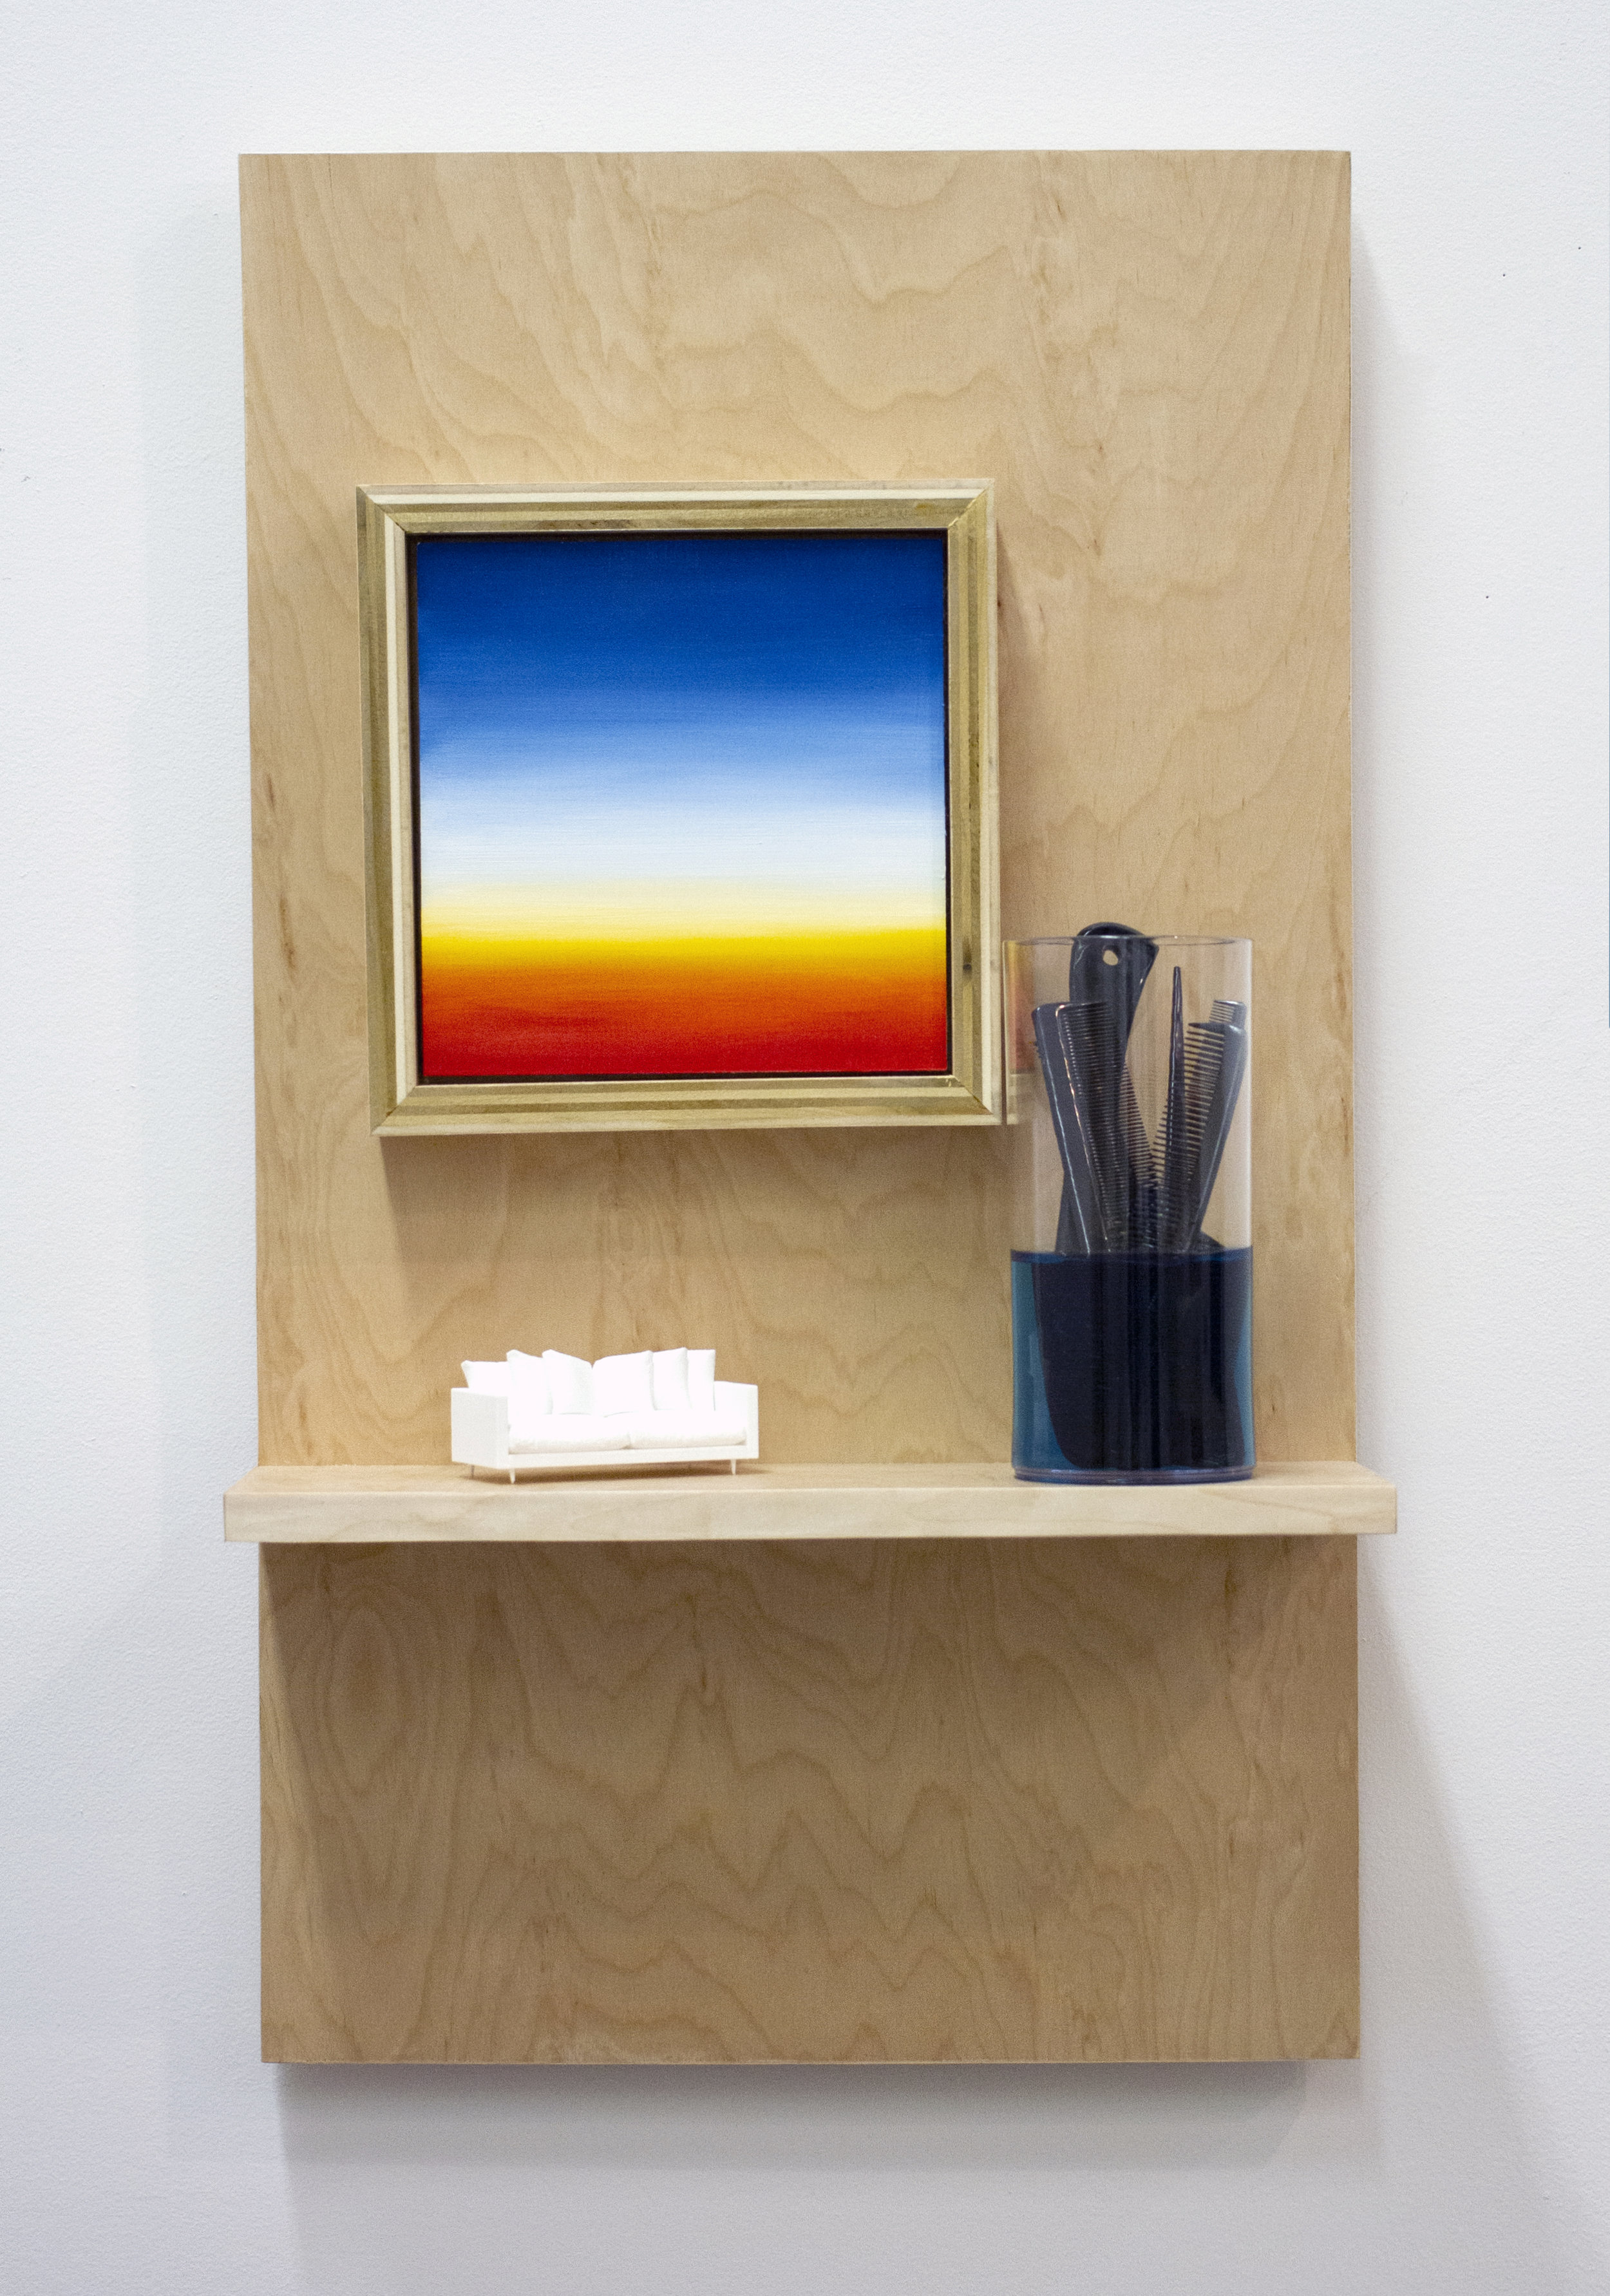 Parlor  Oil on panel, wood, polyurethane, polycarbonate plastic, ABS plastic, plastic combs, epoxy resin  15 x 24 x 6 in